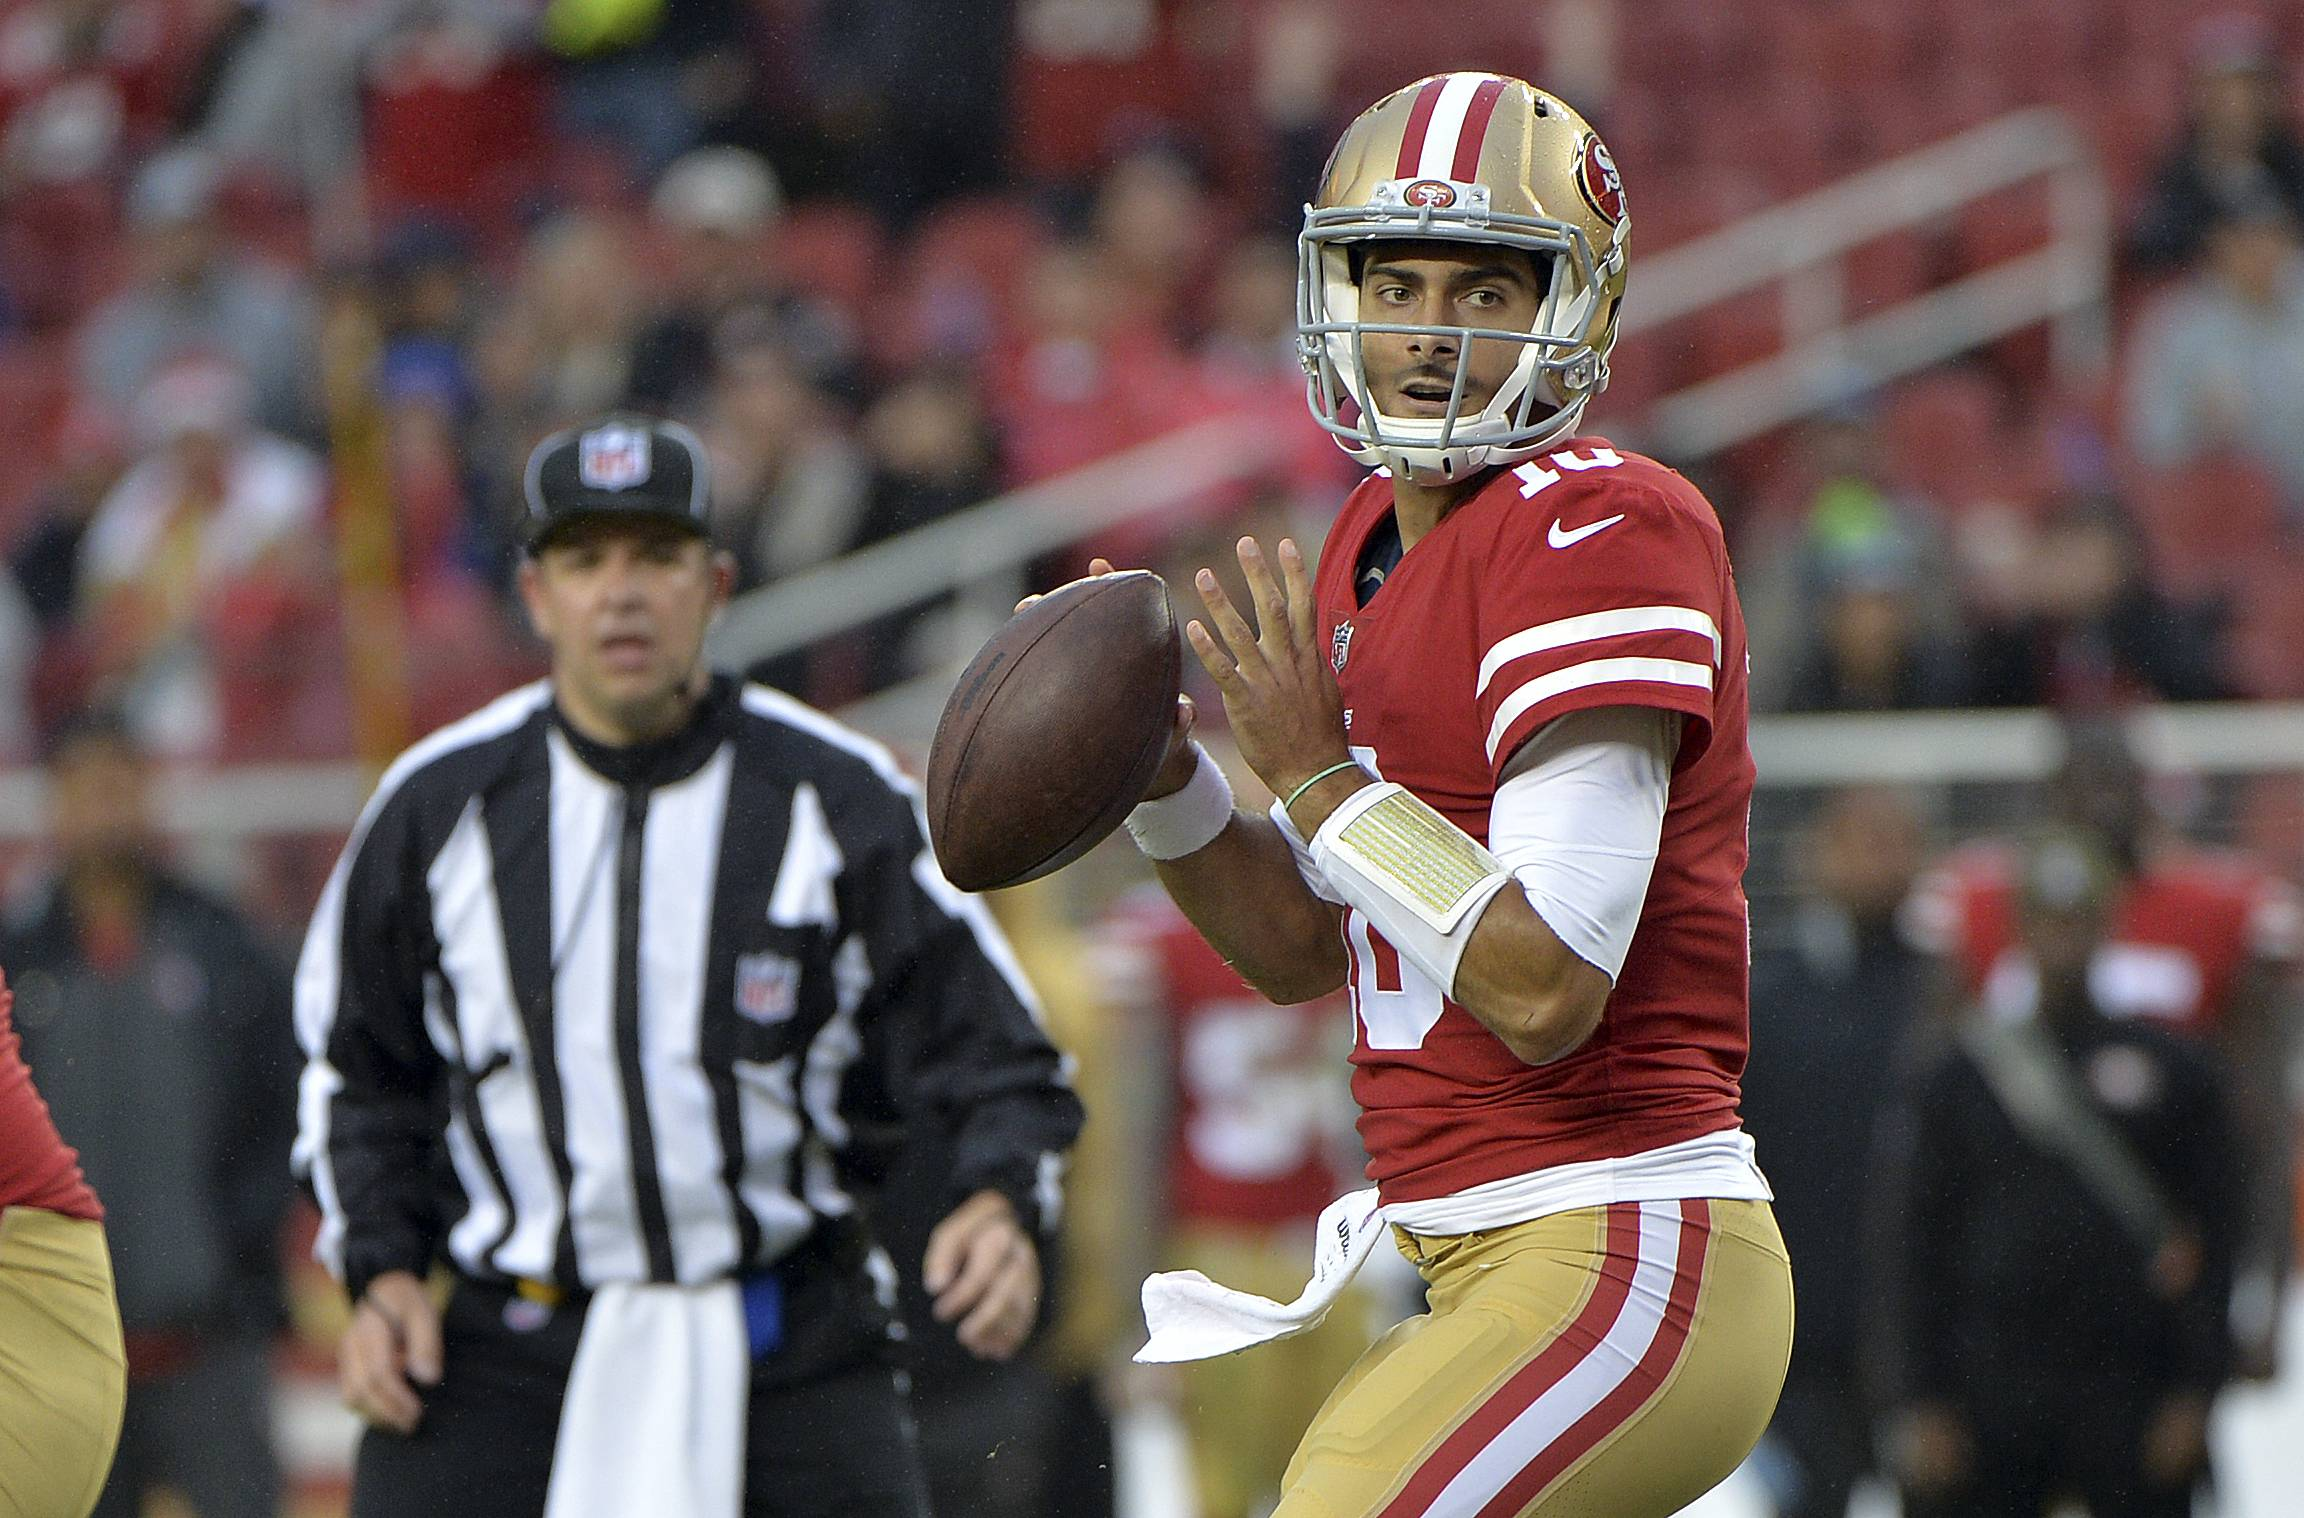 San Francisco quarterback Jimmy Garoppolo, a native of Arlington Heights, will get his first start for the 49ers against the Chicago Bears on Sunday at Soldier Field.